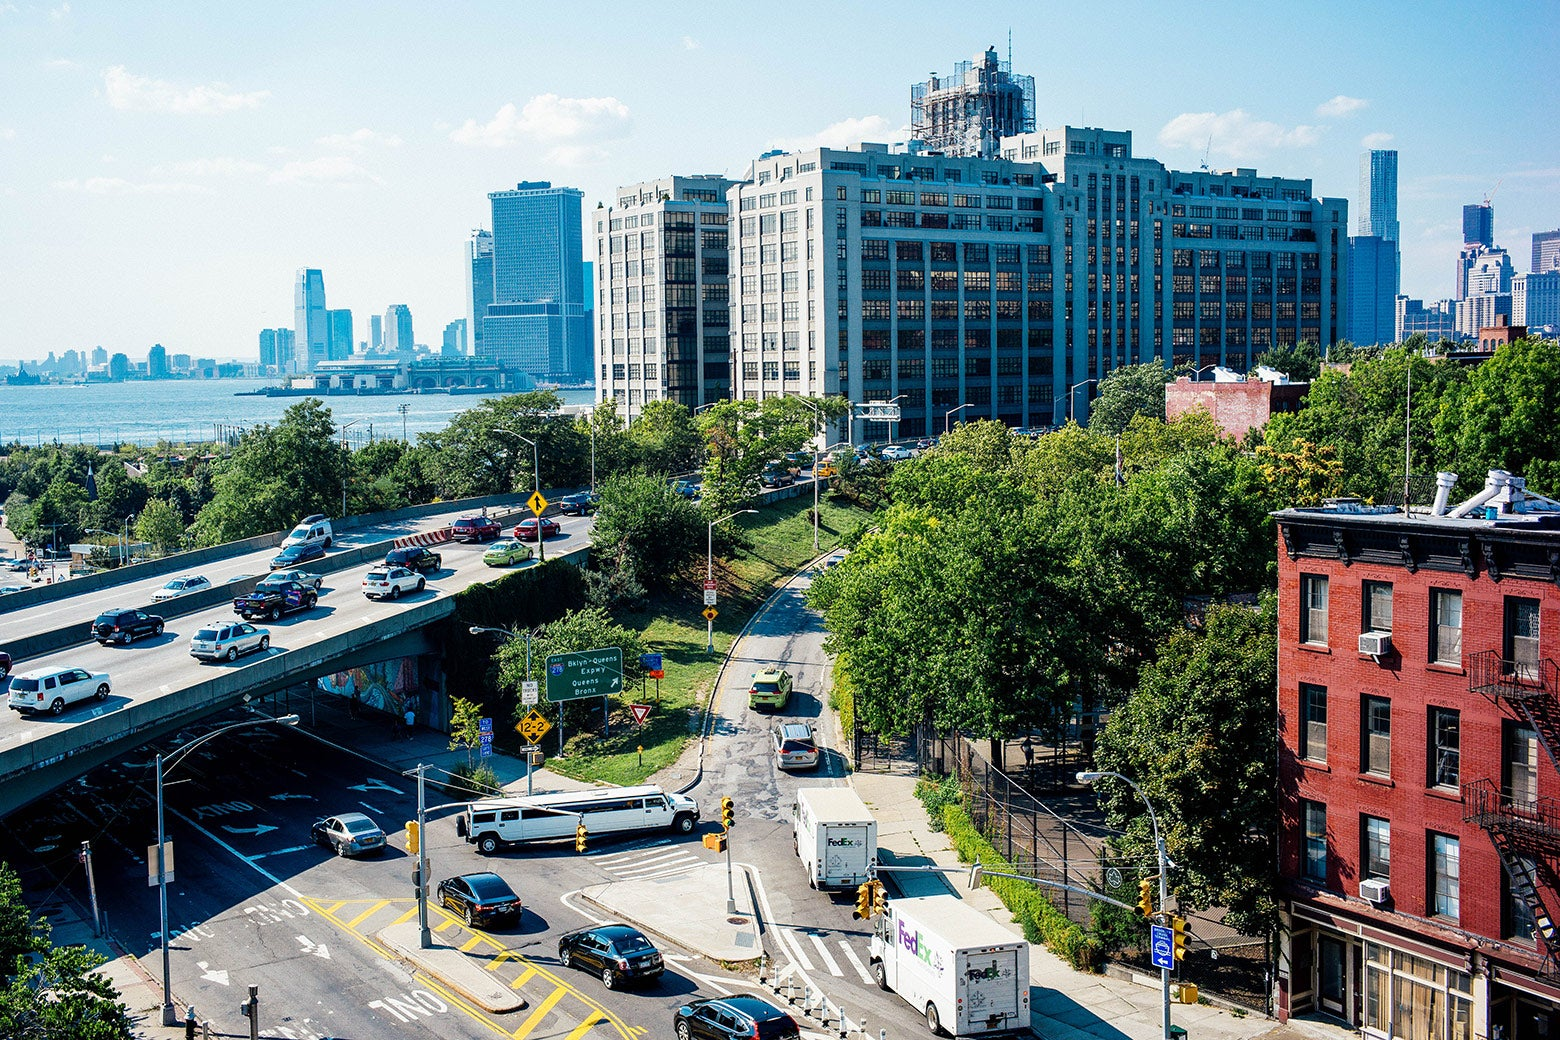 Vehicles enter the Brooklyn–Queens Expressway along Atlantic Avenue on Aug. 15, 2015 in Brooklyn, New York City.